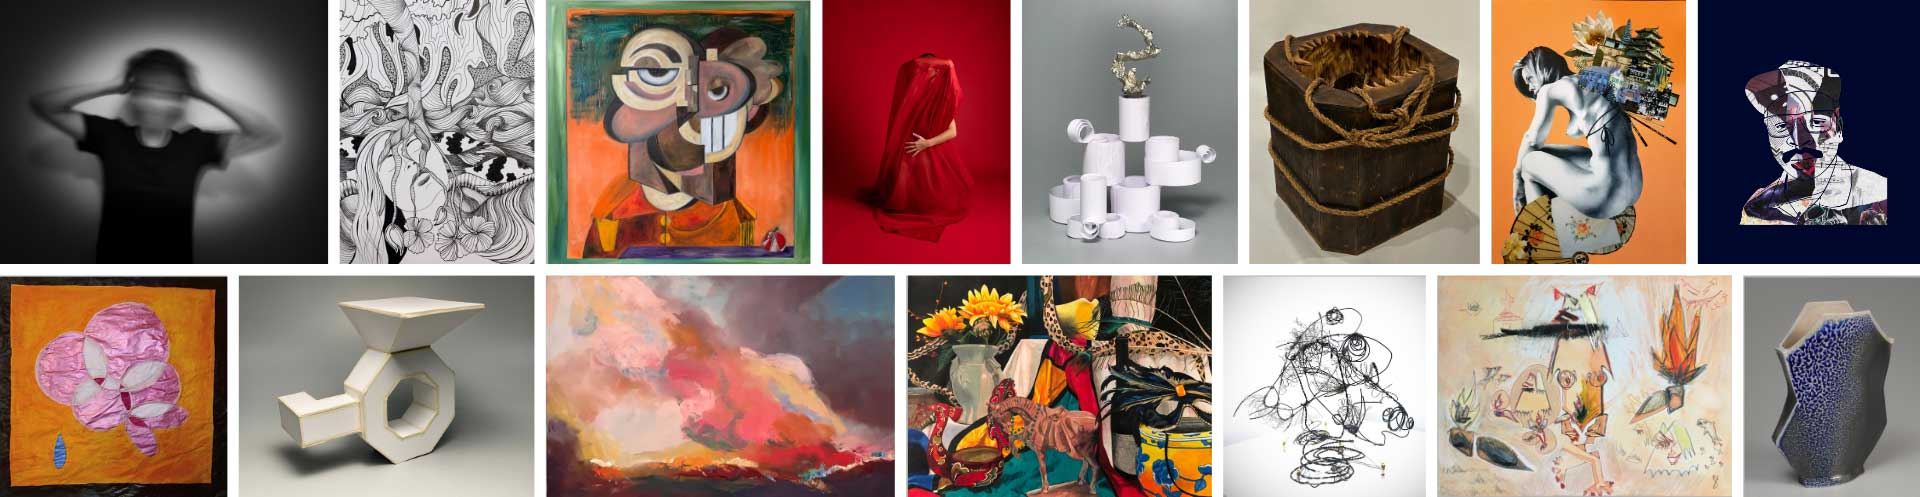 New Visions 2021: Student art exhibition